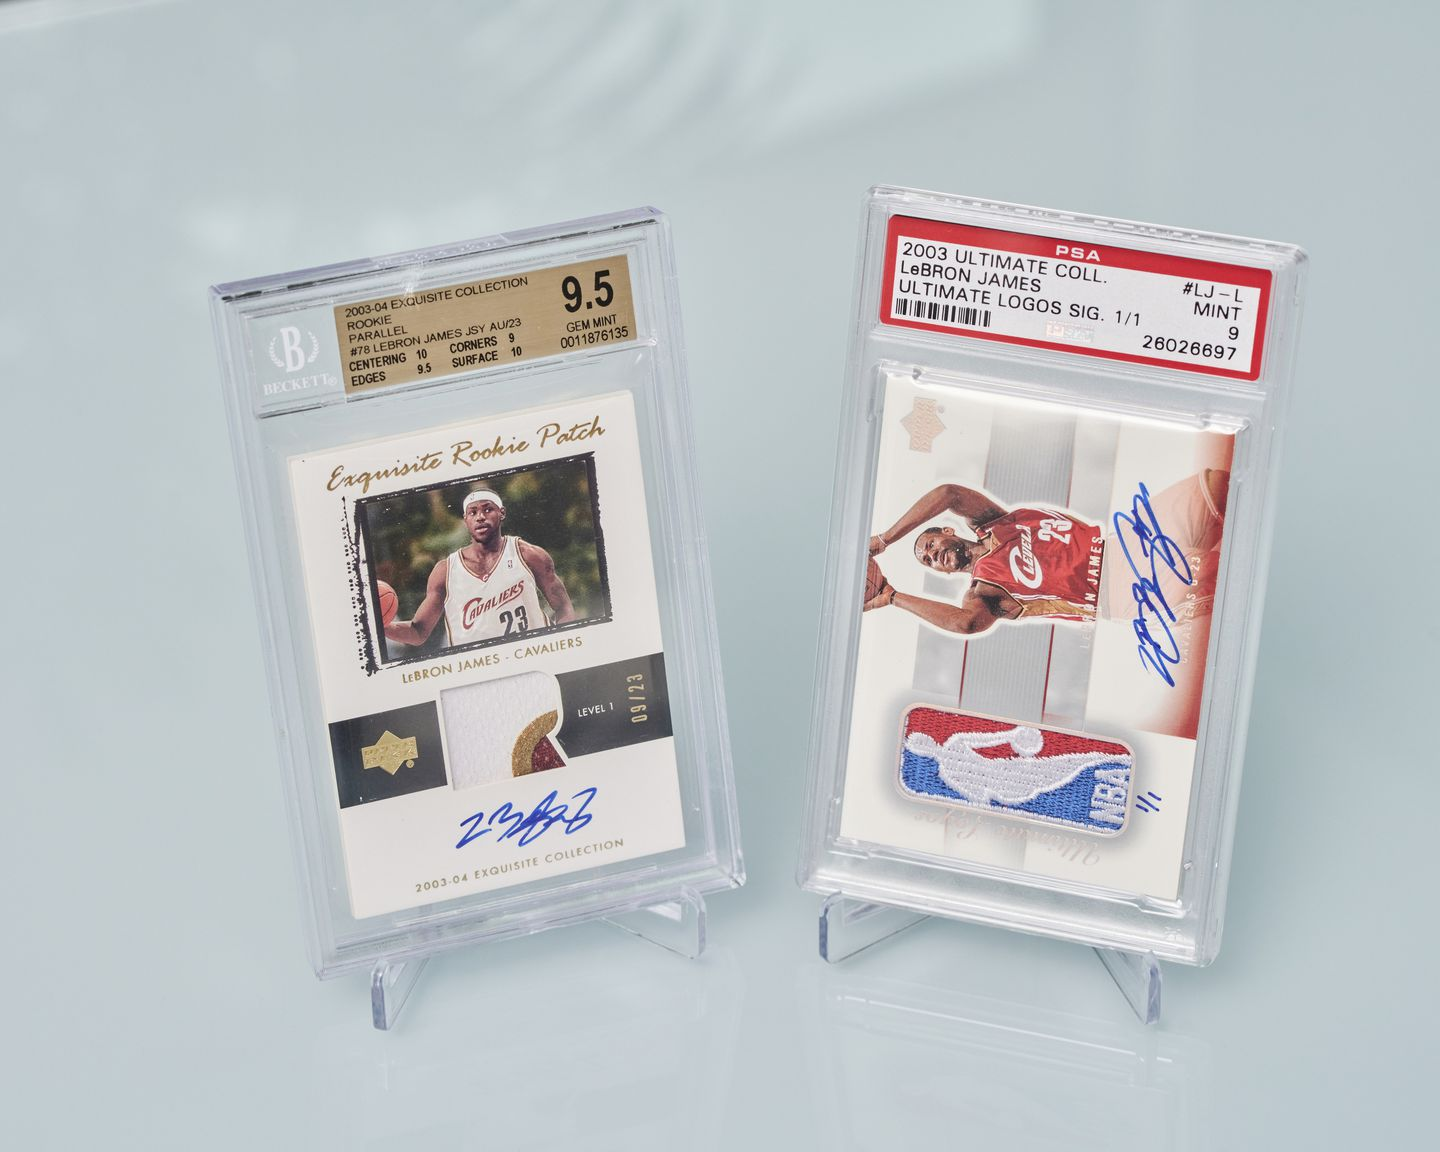 In April, a 2003 LeBron James Exquisite Collection patch card sold for $5.2 million. Together, these two James cards, owned by California collector Aaron Davis, are worth more than $7 million.